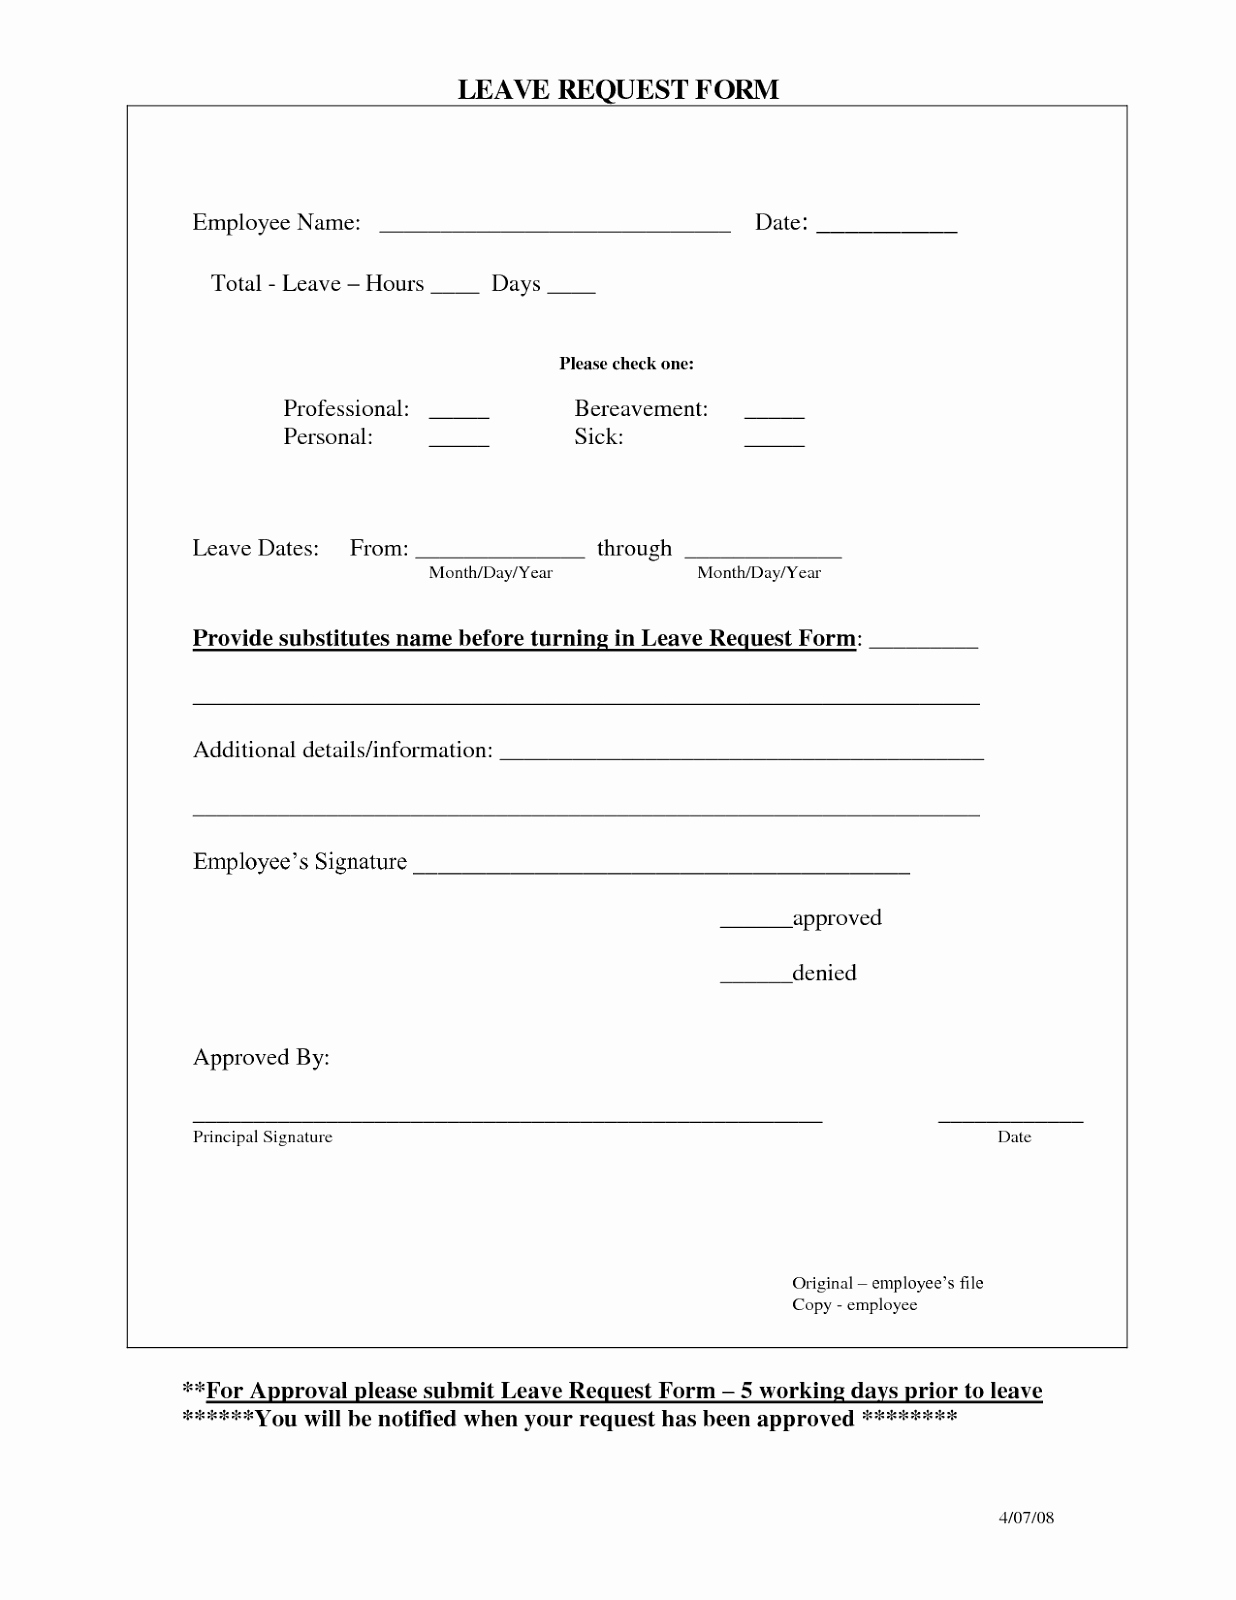 Employee Requisition form Template Unique Employee Time Off Request From Template Excel Template